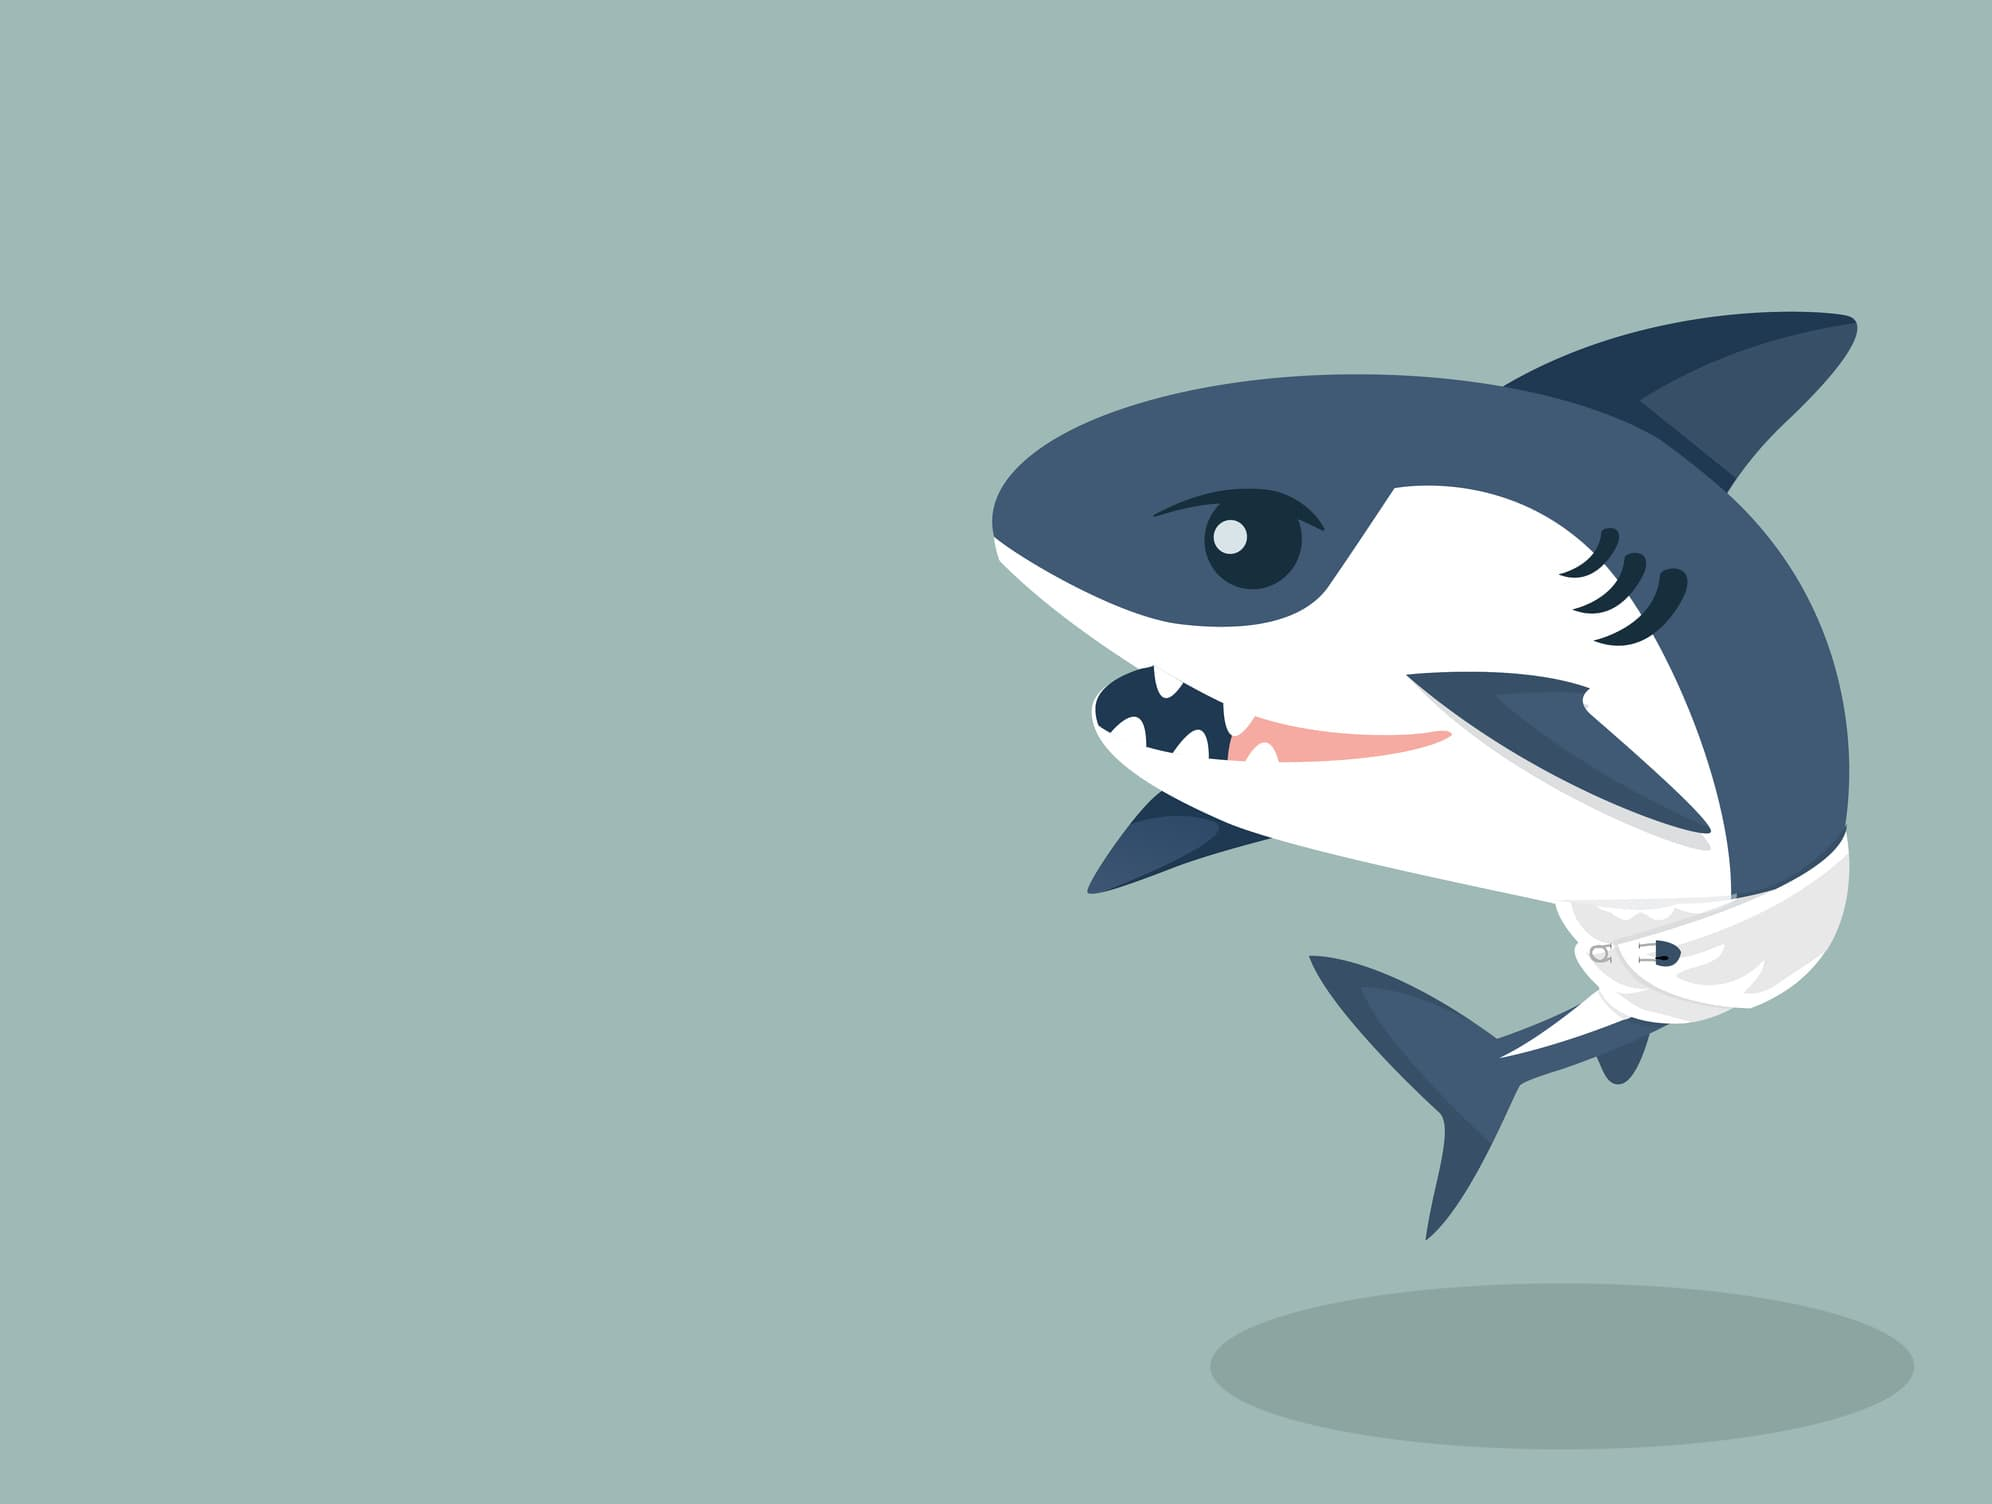 Baby Shark and You: Going Viral